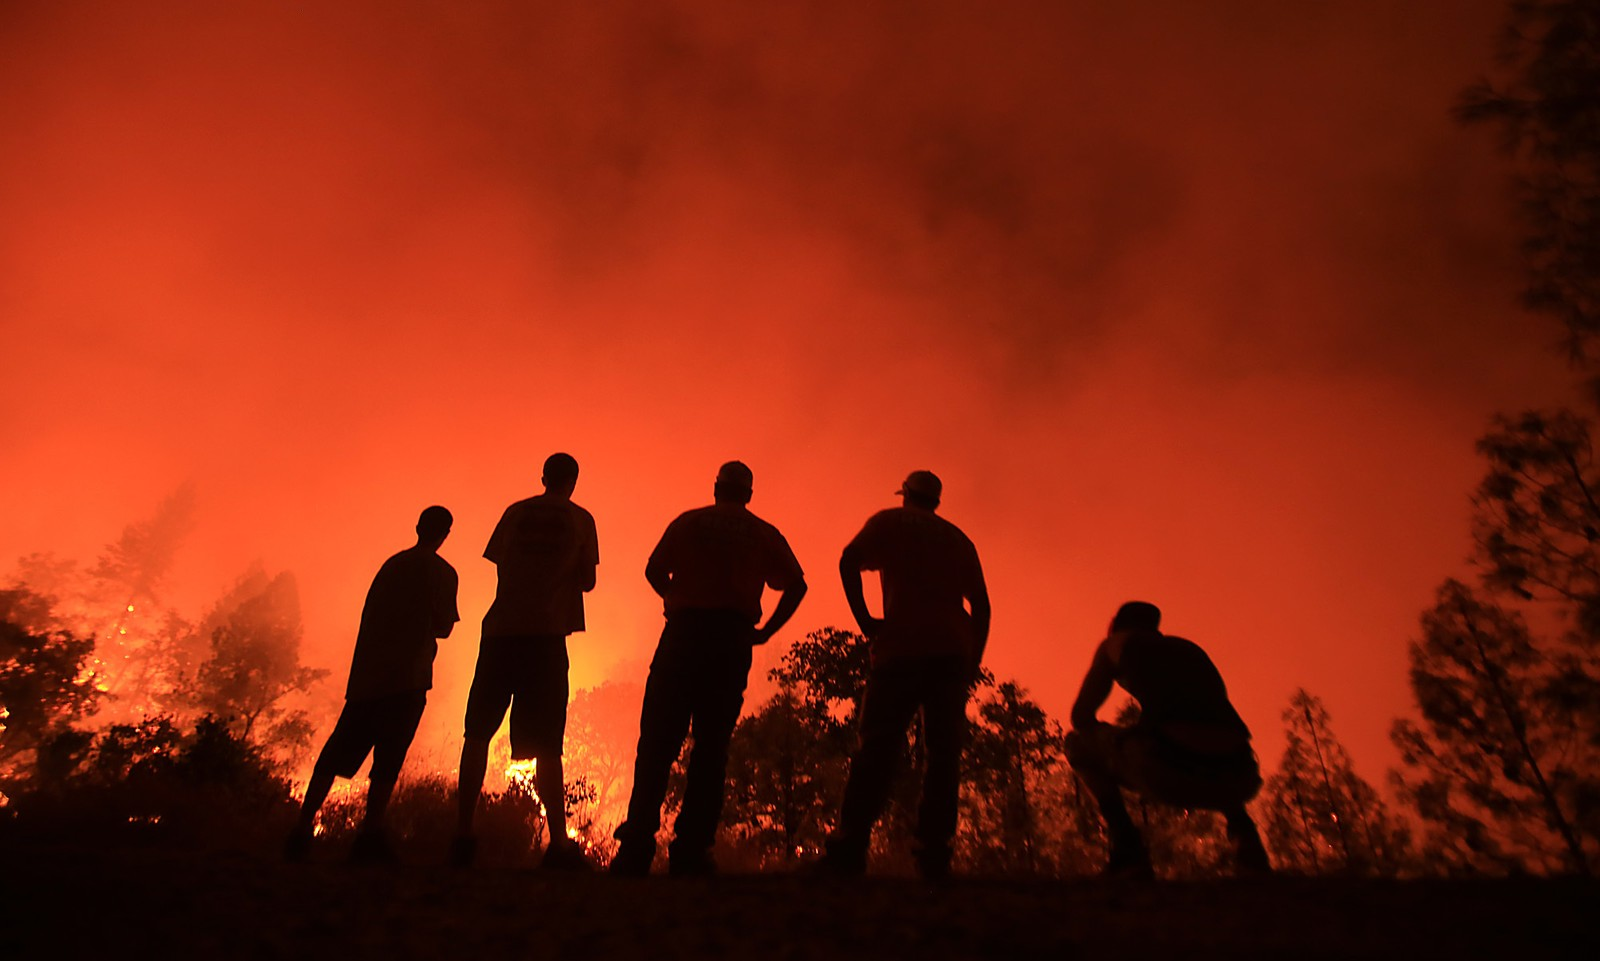 APTOPIX California Wilfires Residents watch as a wildfire burns near their homes off Morgan Valley Road in Lower Lake, Calif., Saturday Aug. 13, 2016. More evacuation orders have been issued as the wildfire grows in Northern California, threatening the lake community of about 1,300 that was evacuated a year ago because of a destructive fire. (Kent Porter/The Press Democrat via AP)